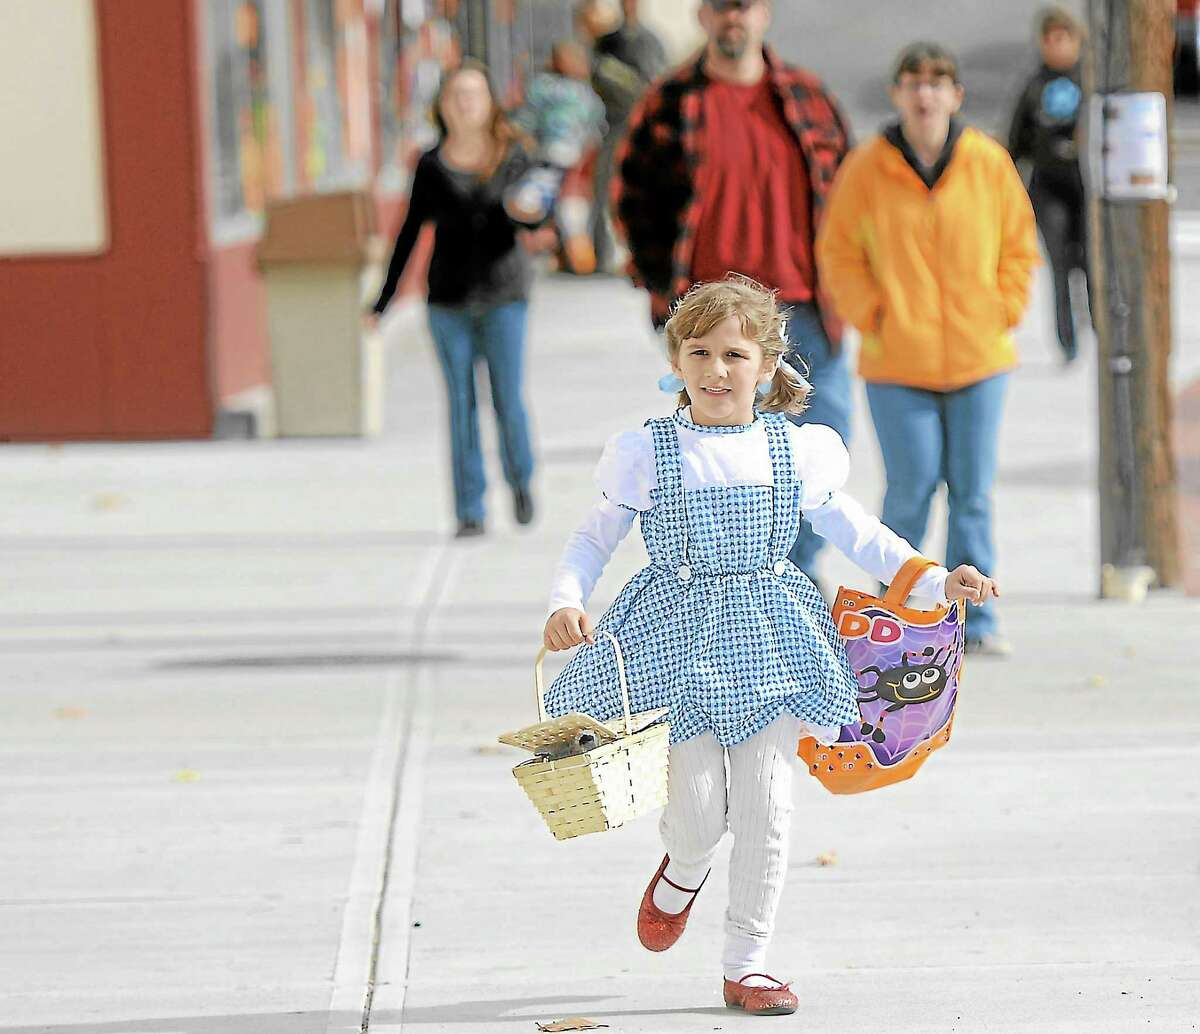 Mya Johnson, 6, looks for more trick-or-treat stops in Winsted on Saturday for the city's annual trick-or-treat on Main St, hosted by Friends of Main Street.Laurie Gaboardi - Register Citizen